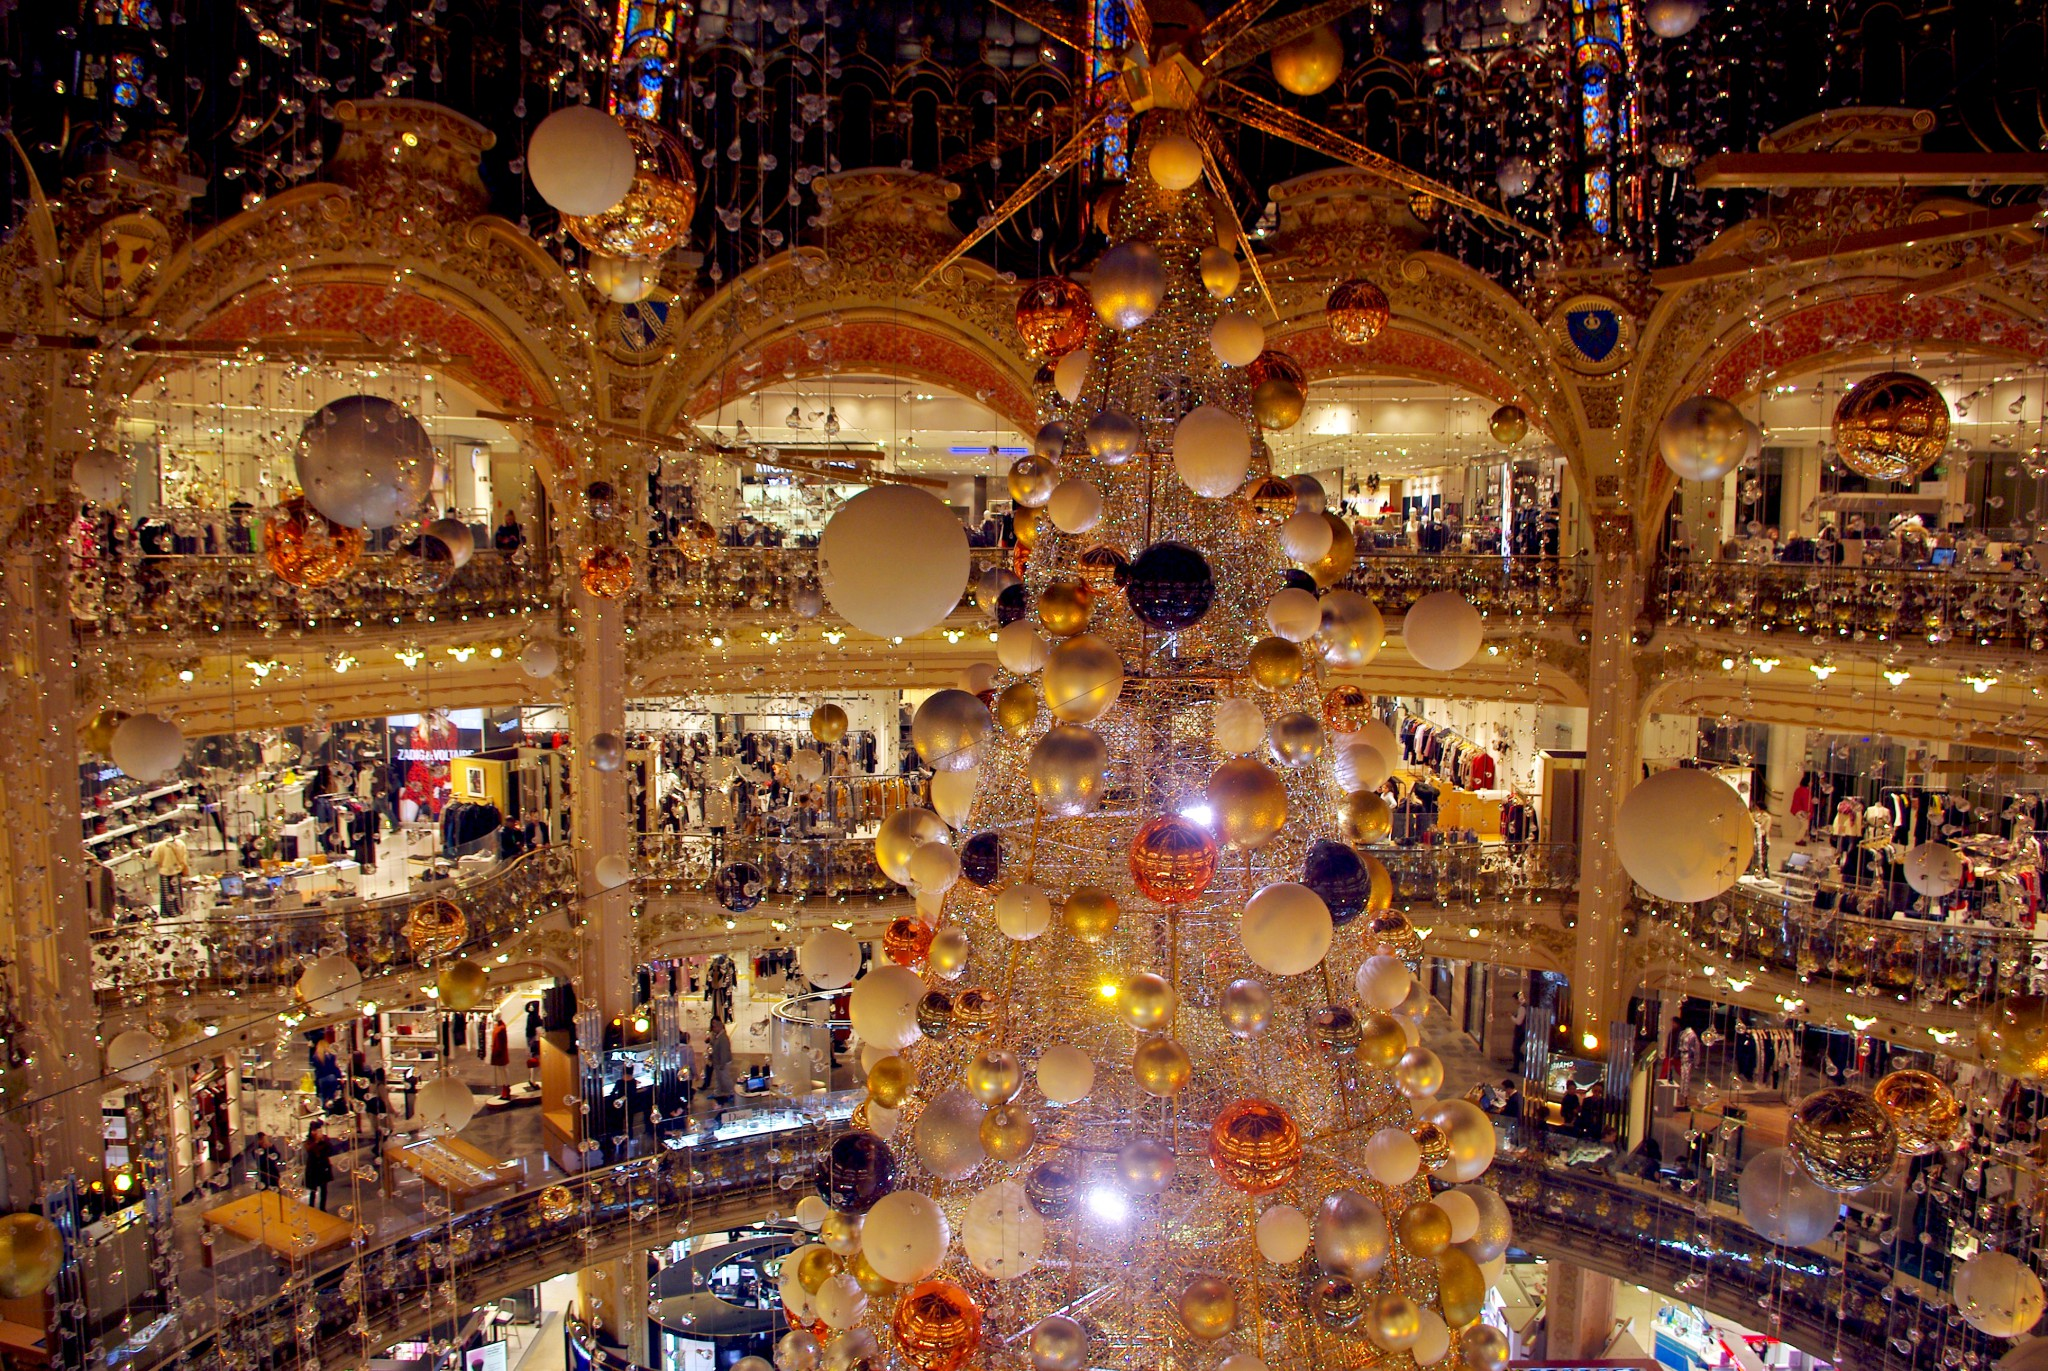 Inside Christmas Decorations